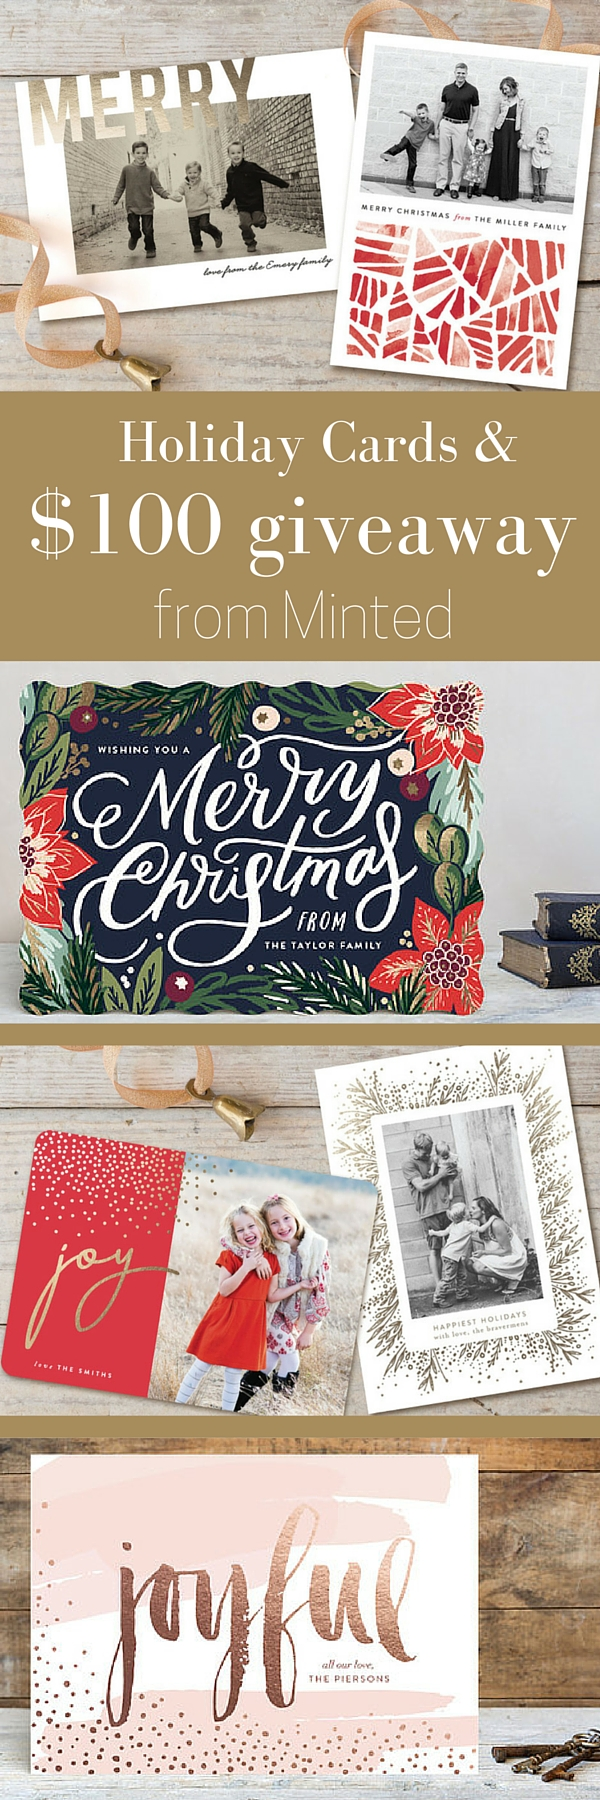 Holiday Cards and a Giveaway for $100 credit to Minted